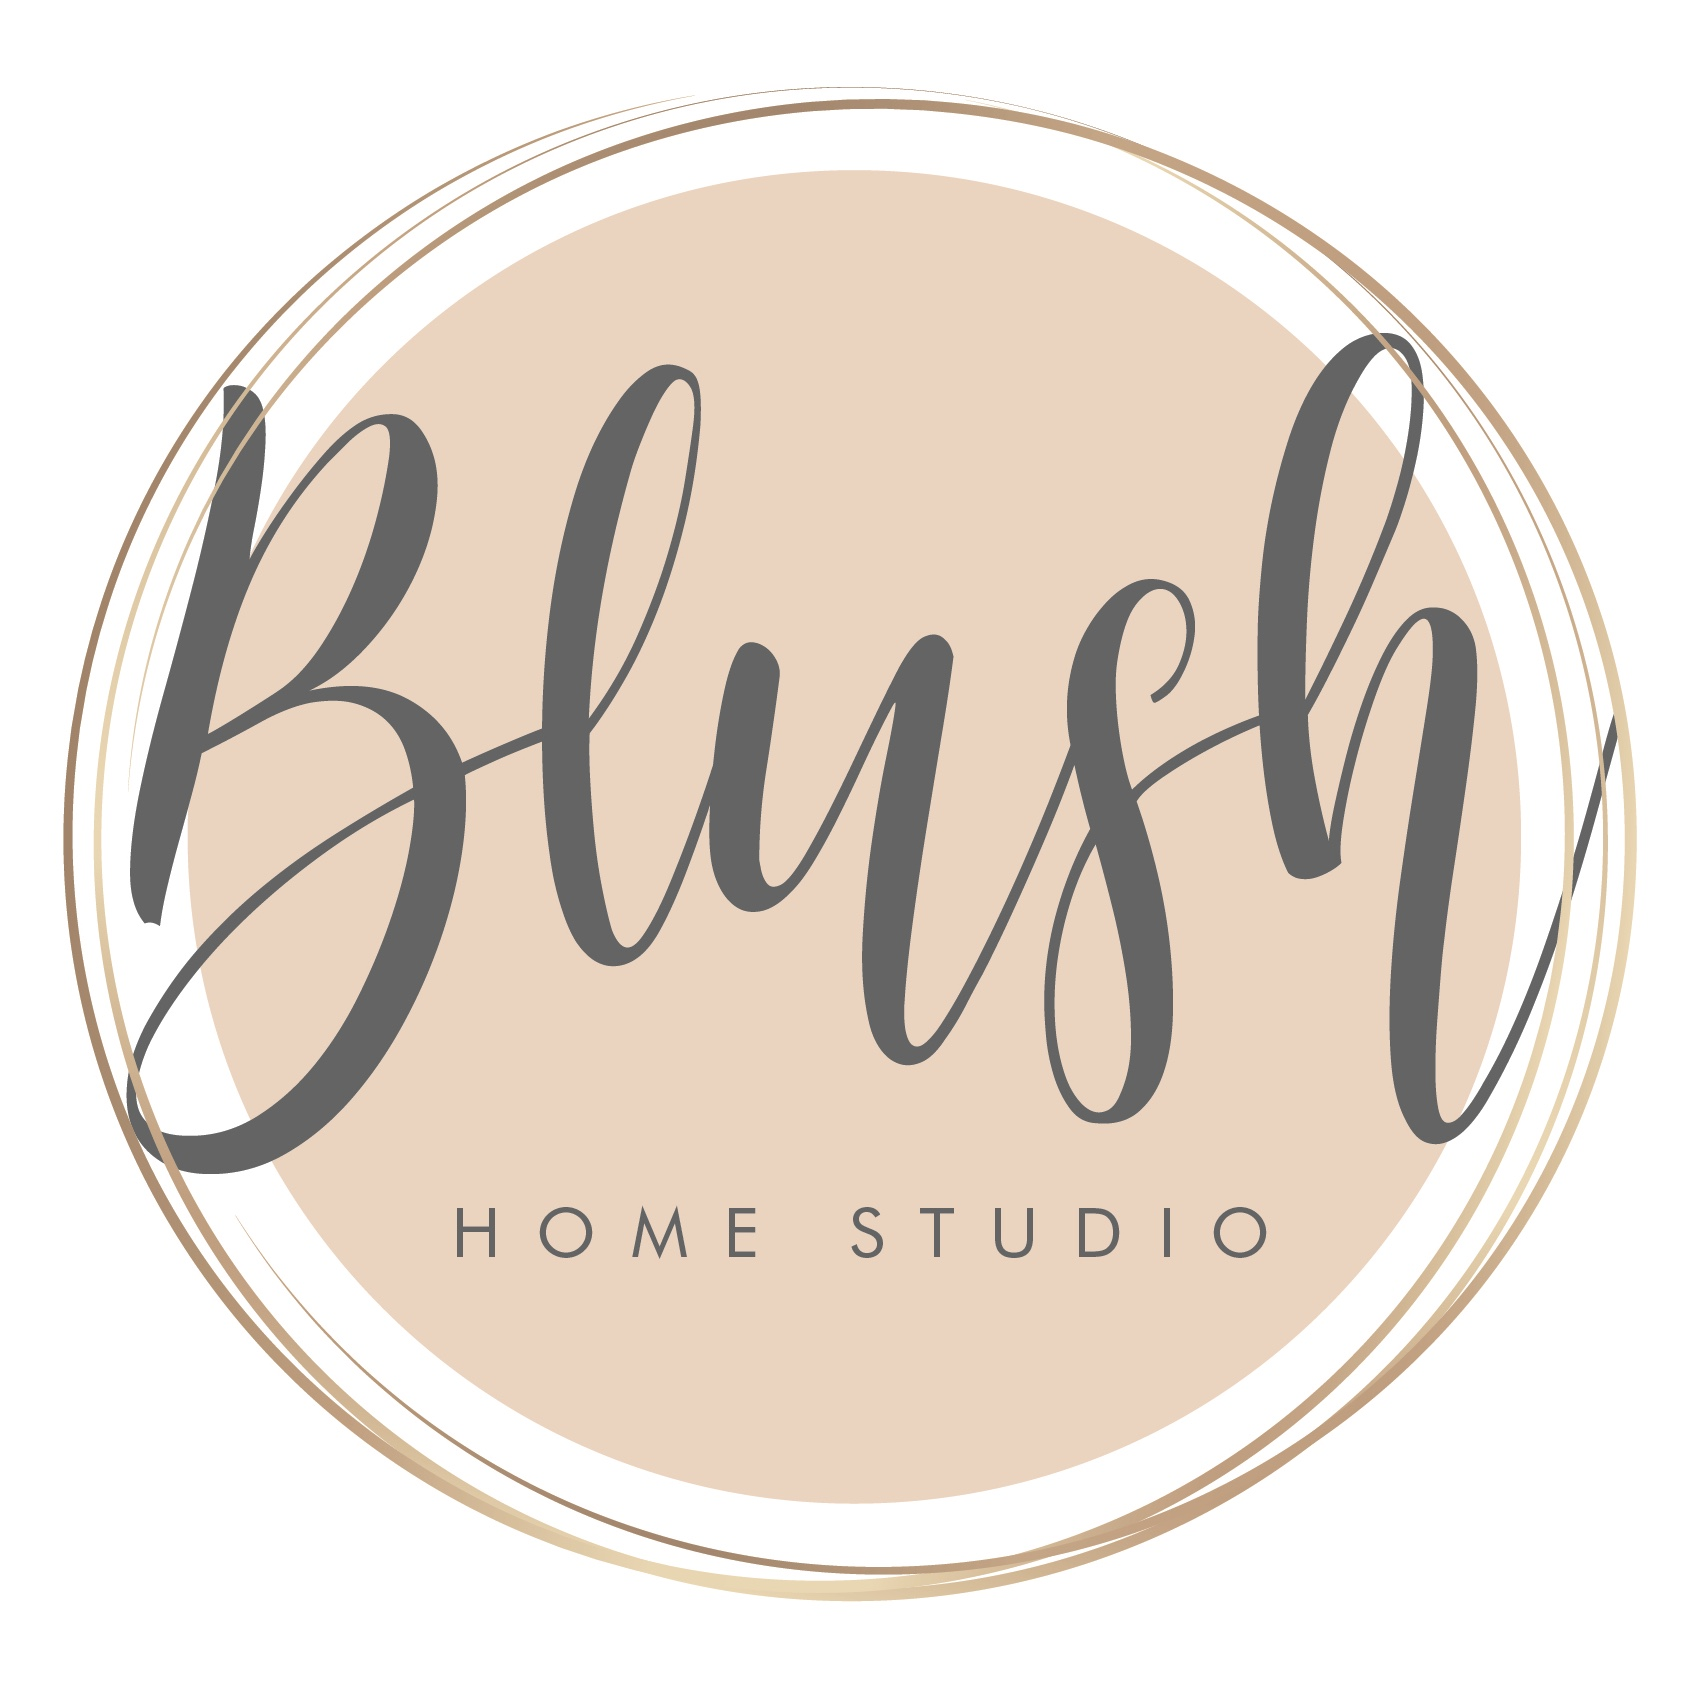 Blush Home Studio